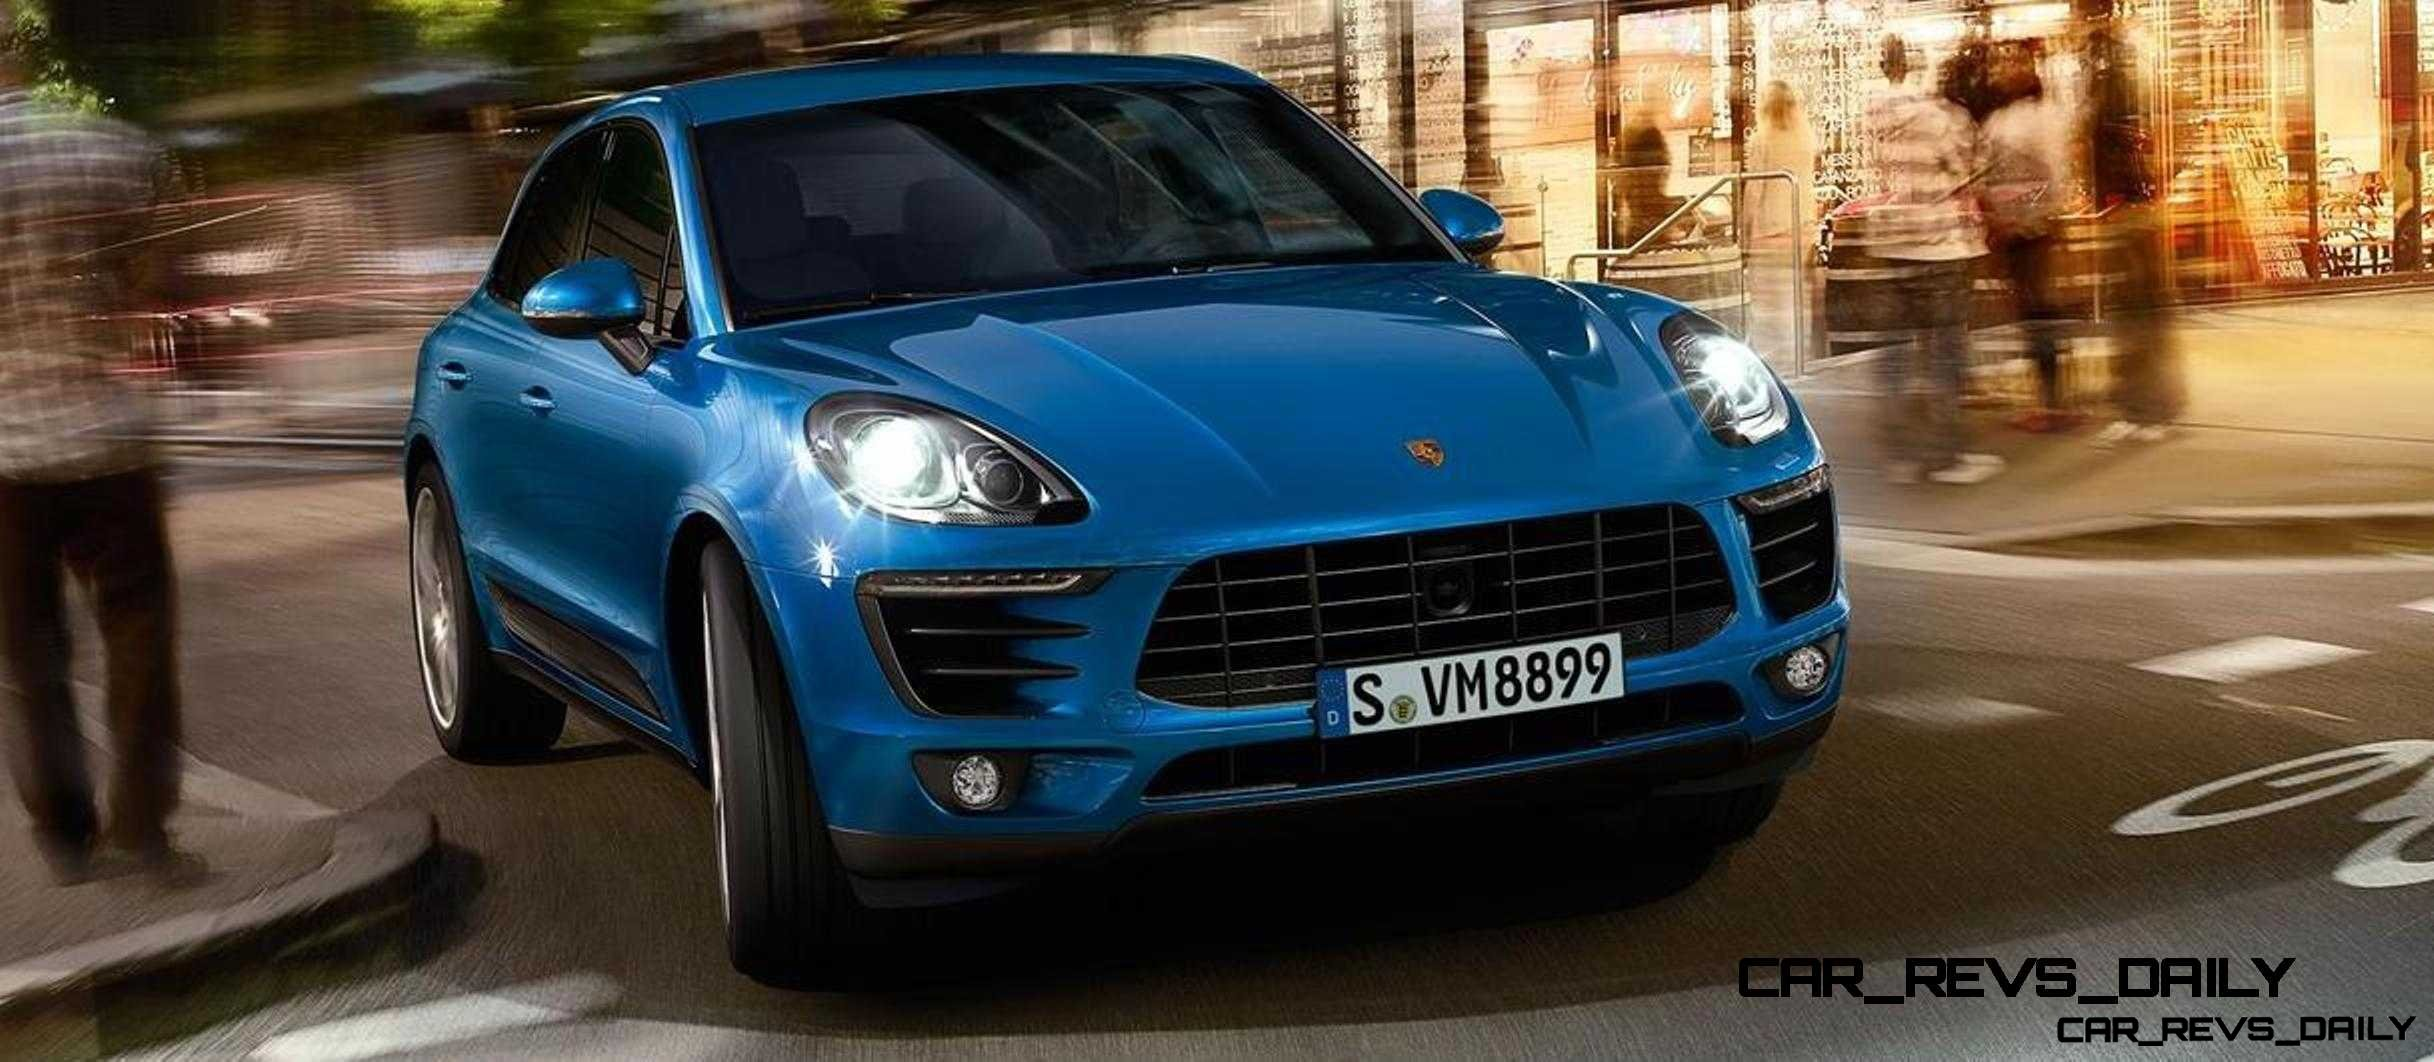 2015 Porsche Macan - Latest Images - CarRevsDaily.com 52